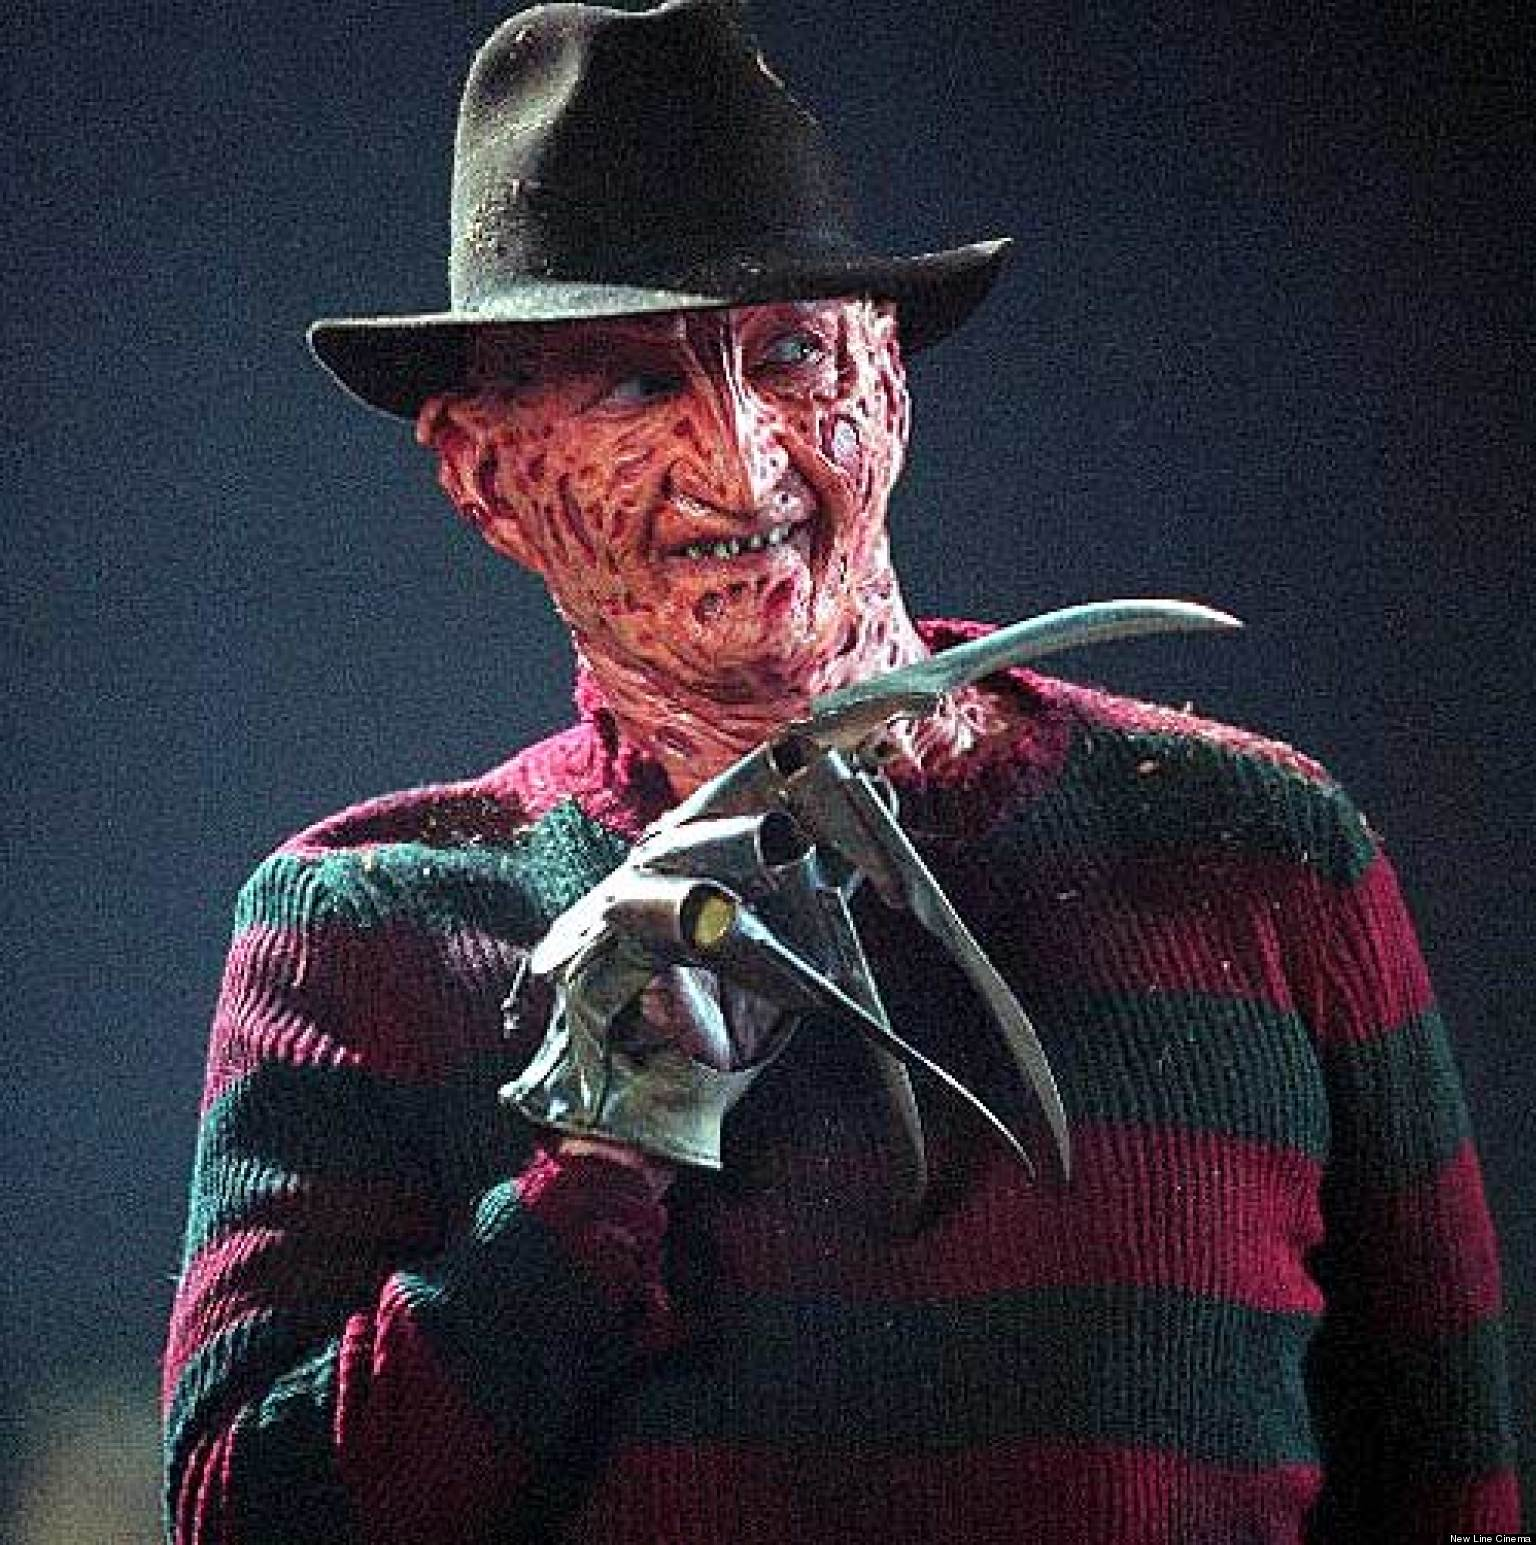 10 freddy krueger facts to read before you sleep | the list love